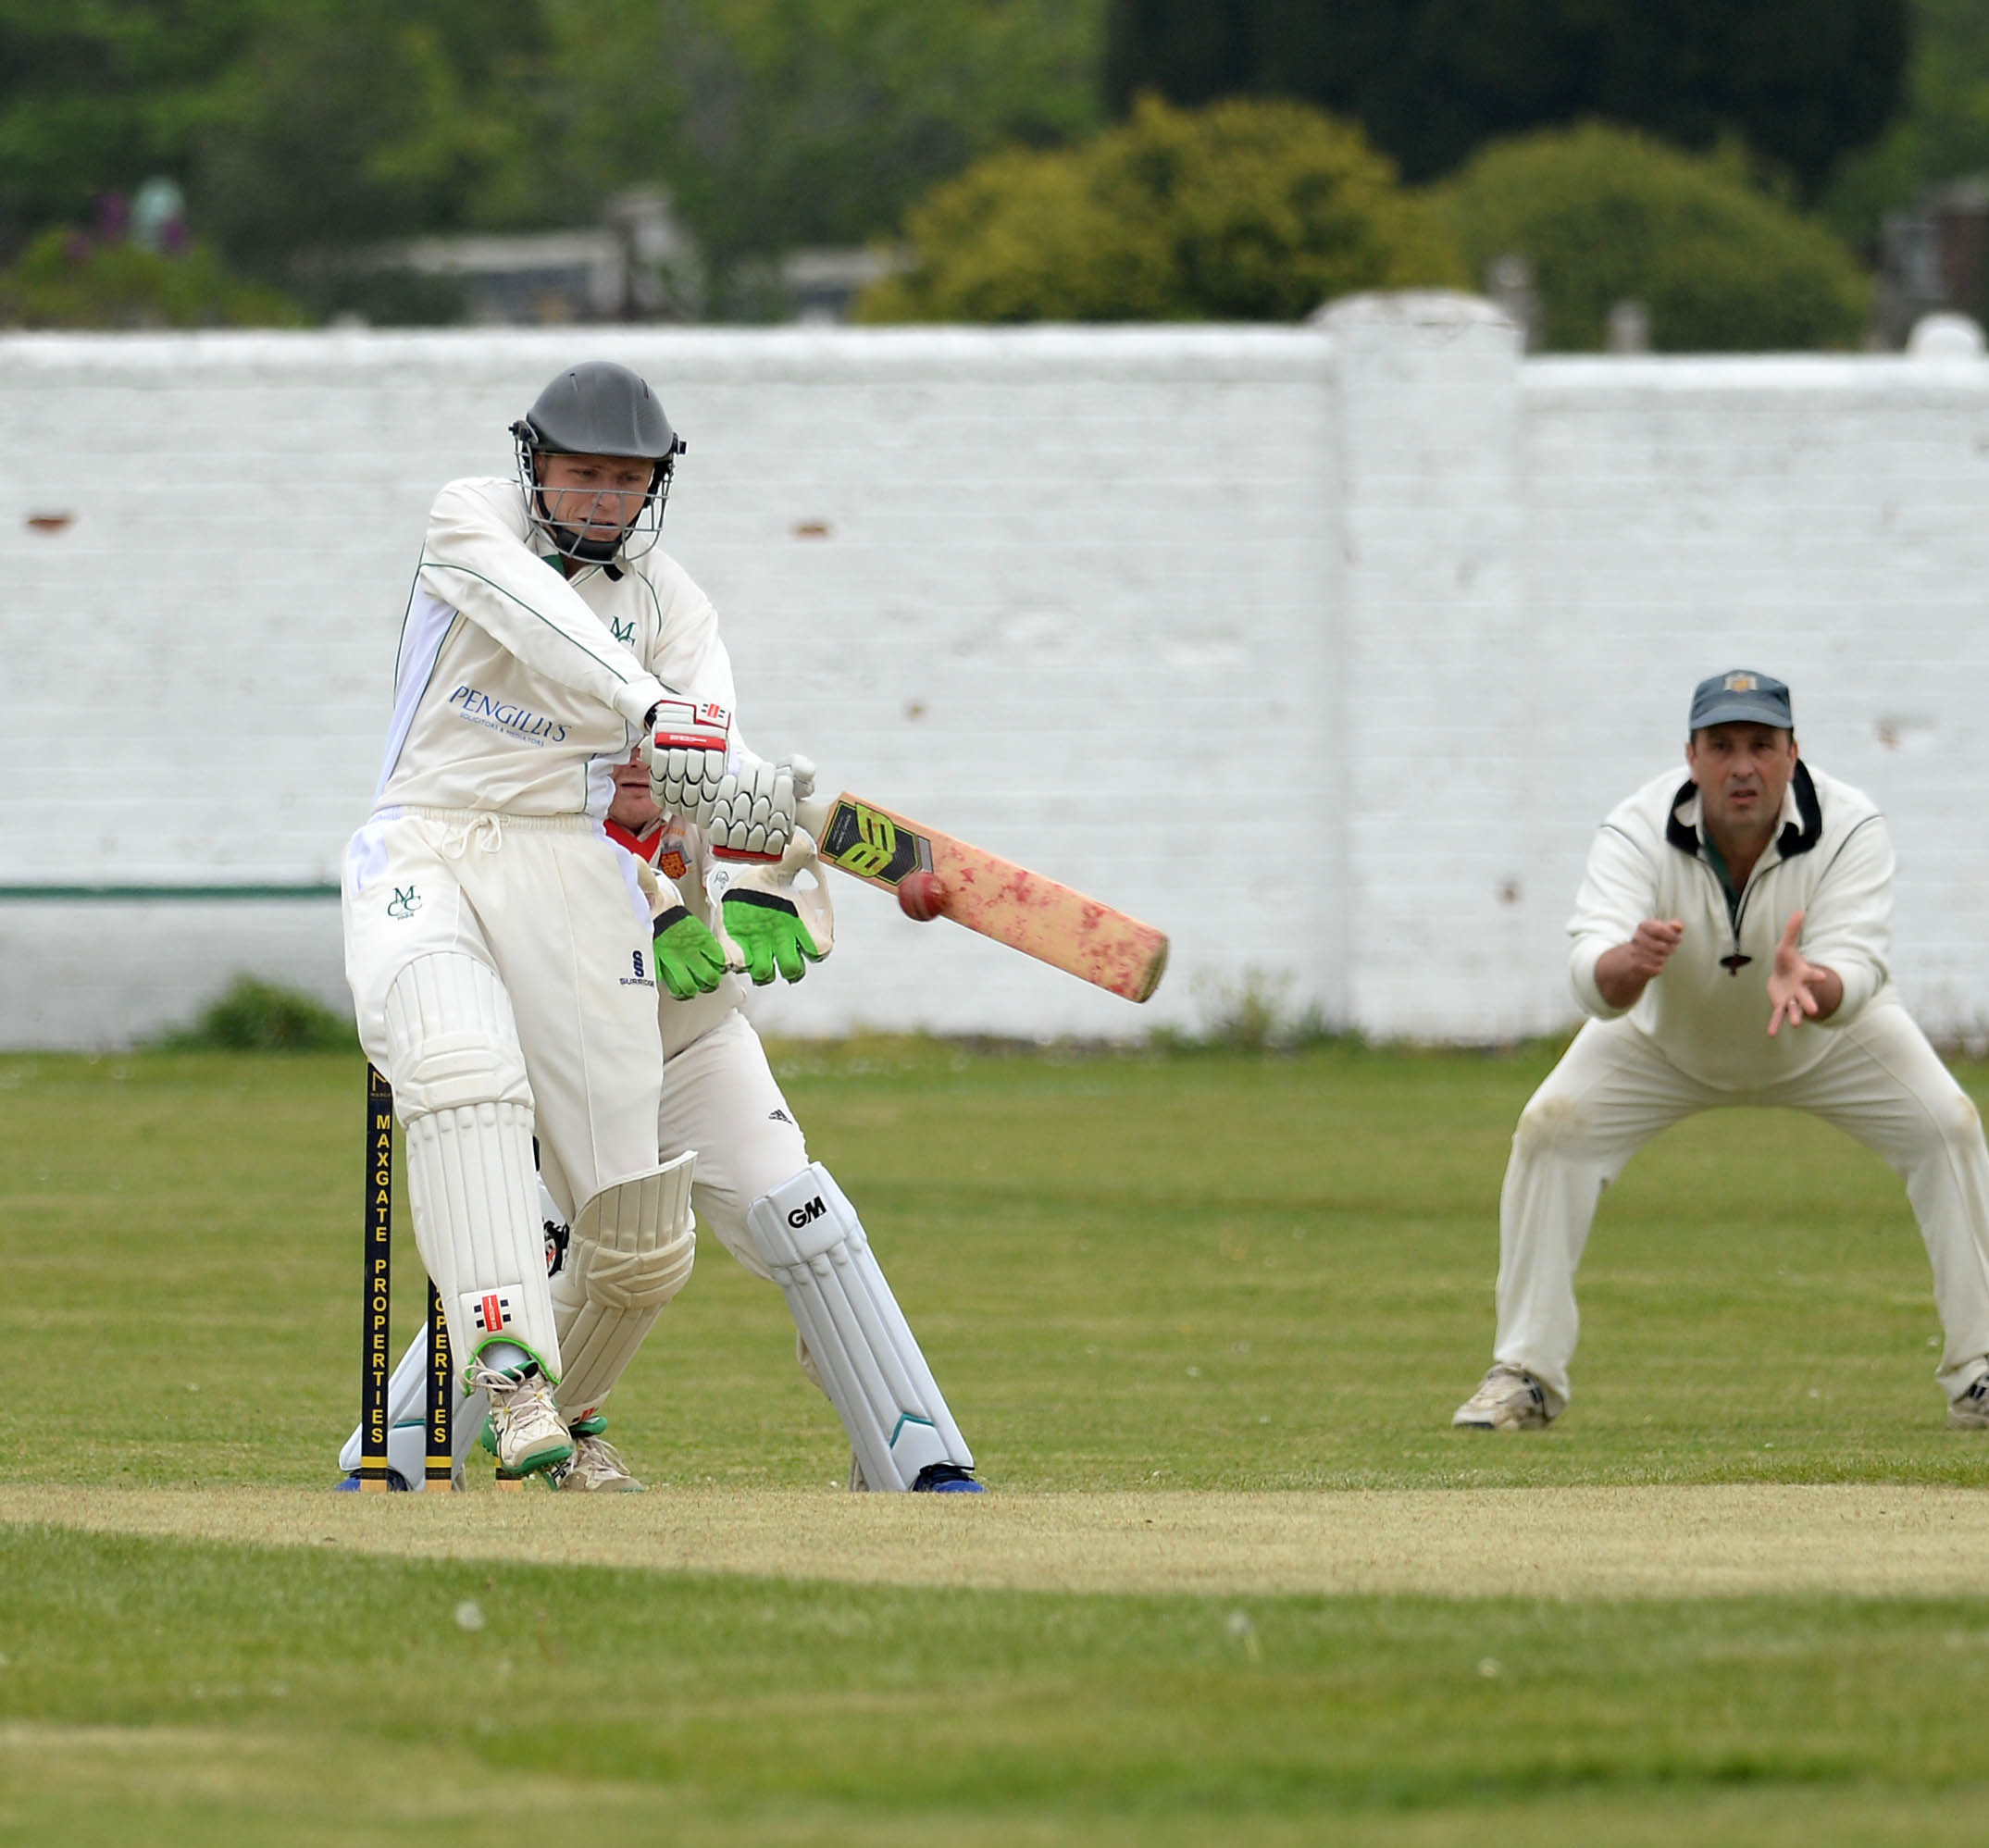 OPENER: Ed Nichols led the Dorset Leopards to victory